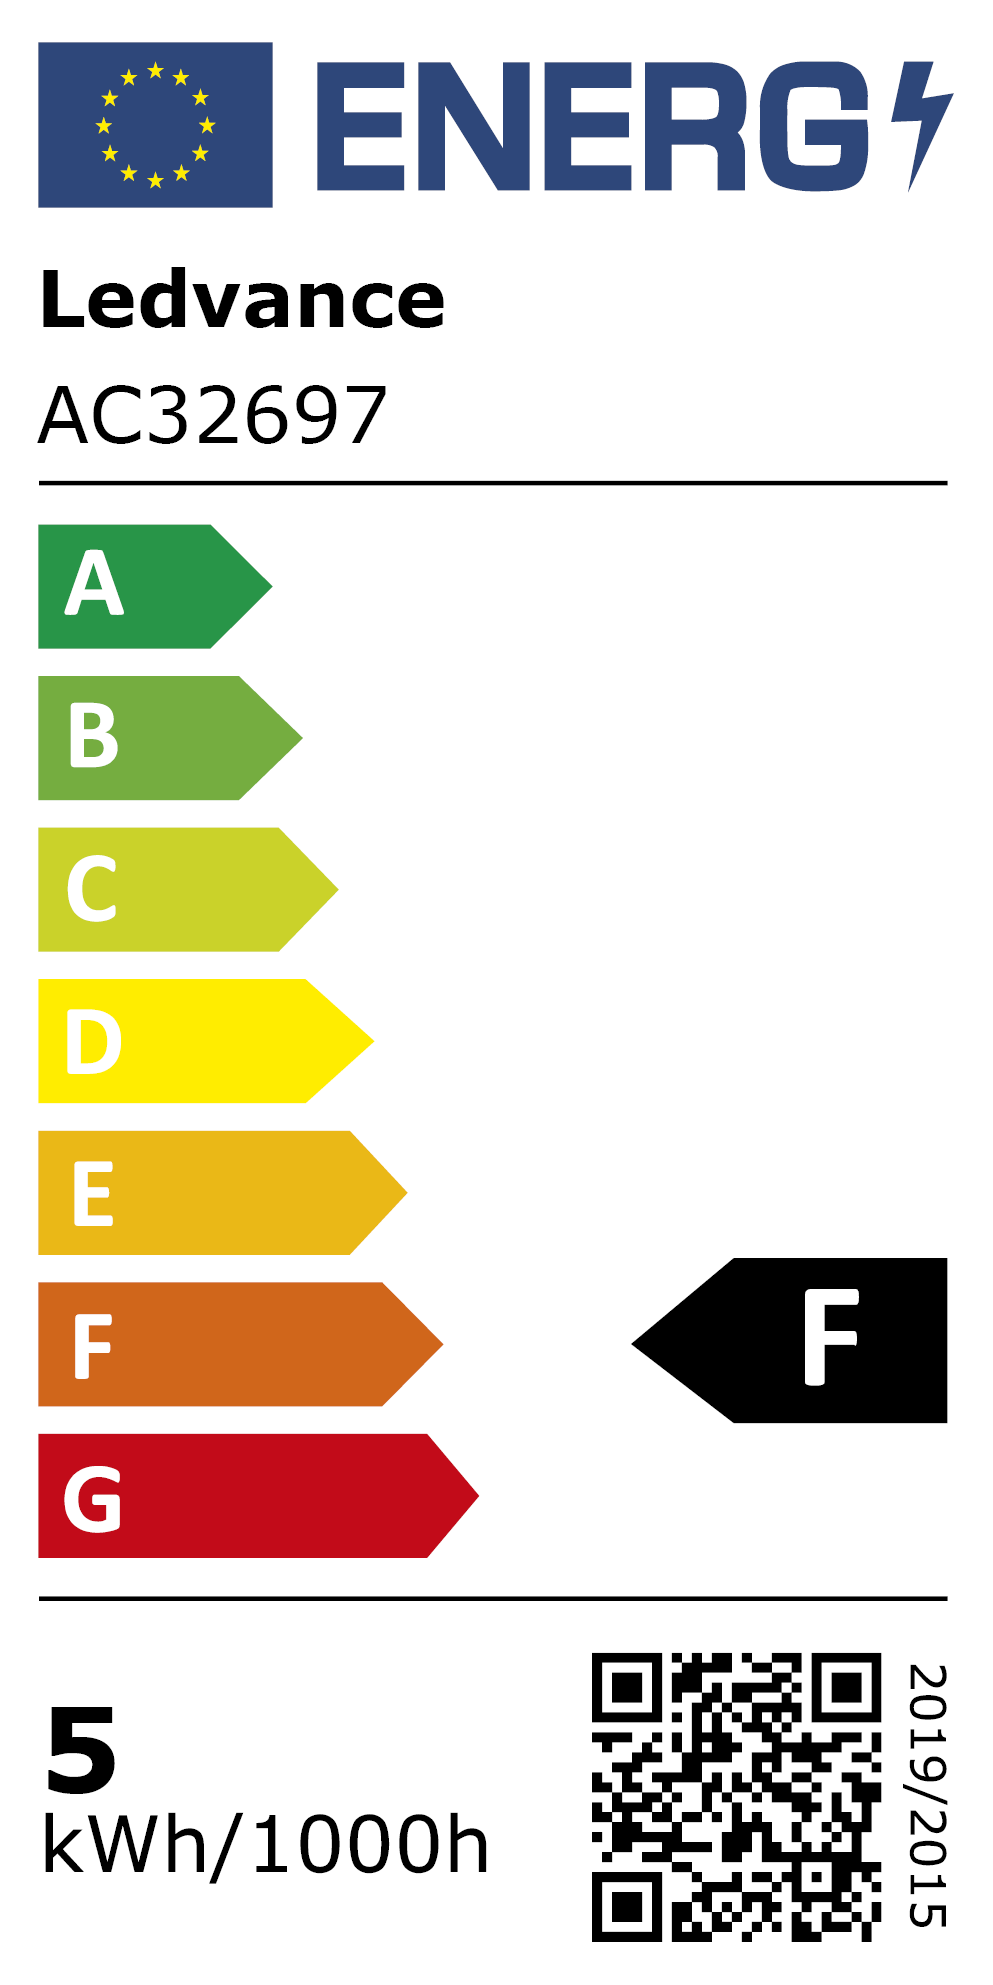 New 2021 Energy Rating Label: MPN AC32697